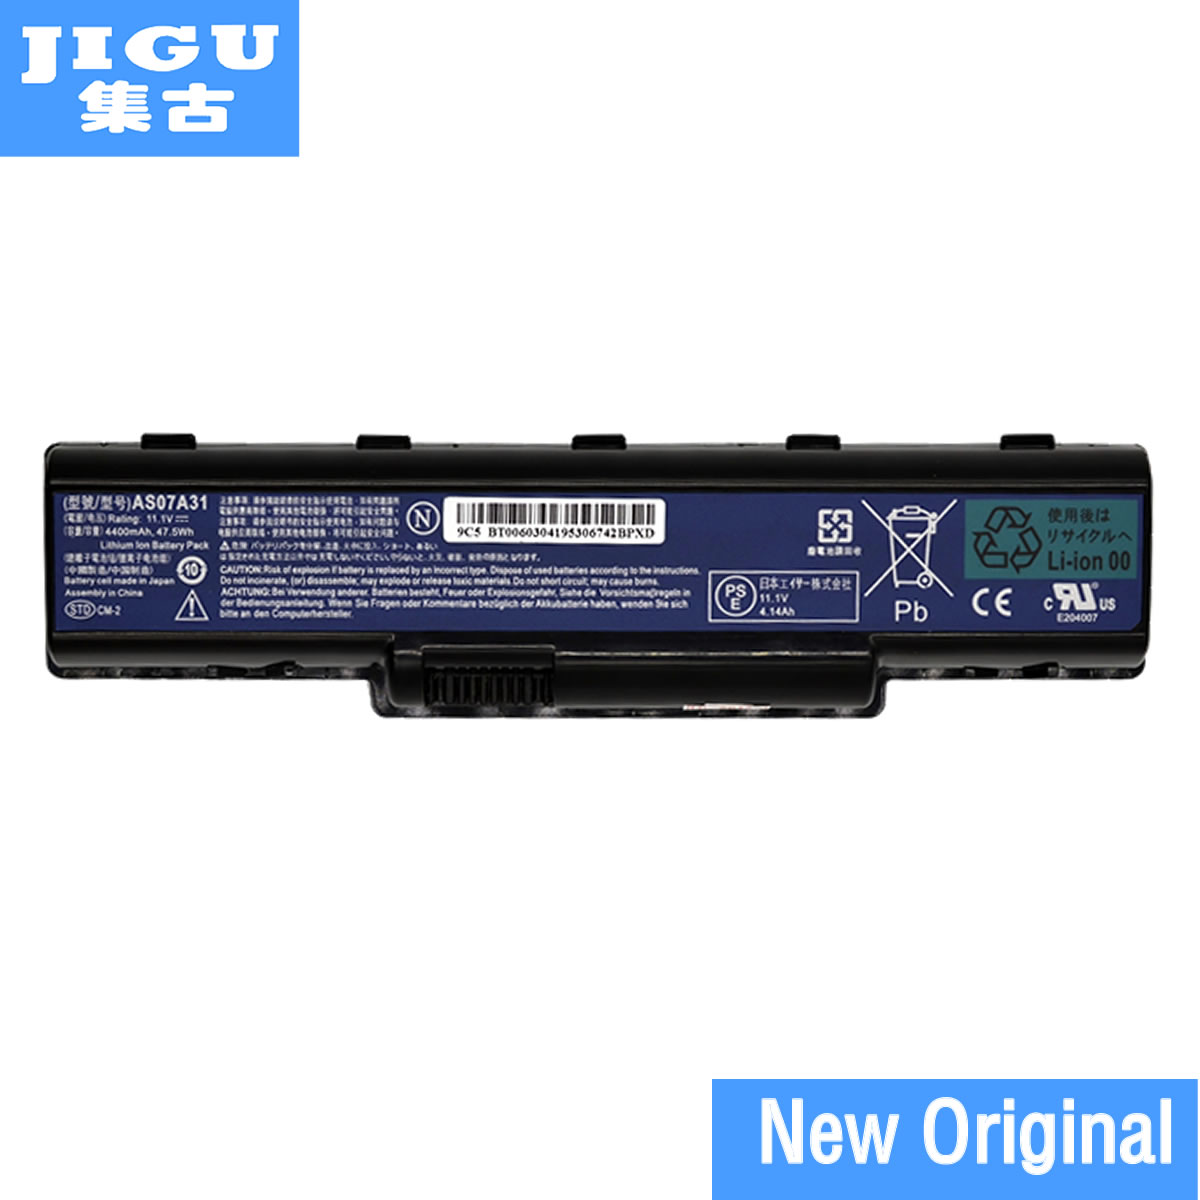 JIGU AS07A31 AS07A32 AS07A41 AS07A42 AS07A51 AS07A52 AS07A71 AS07A72 as07a75 Original Laptop Battery For ACER image